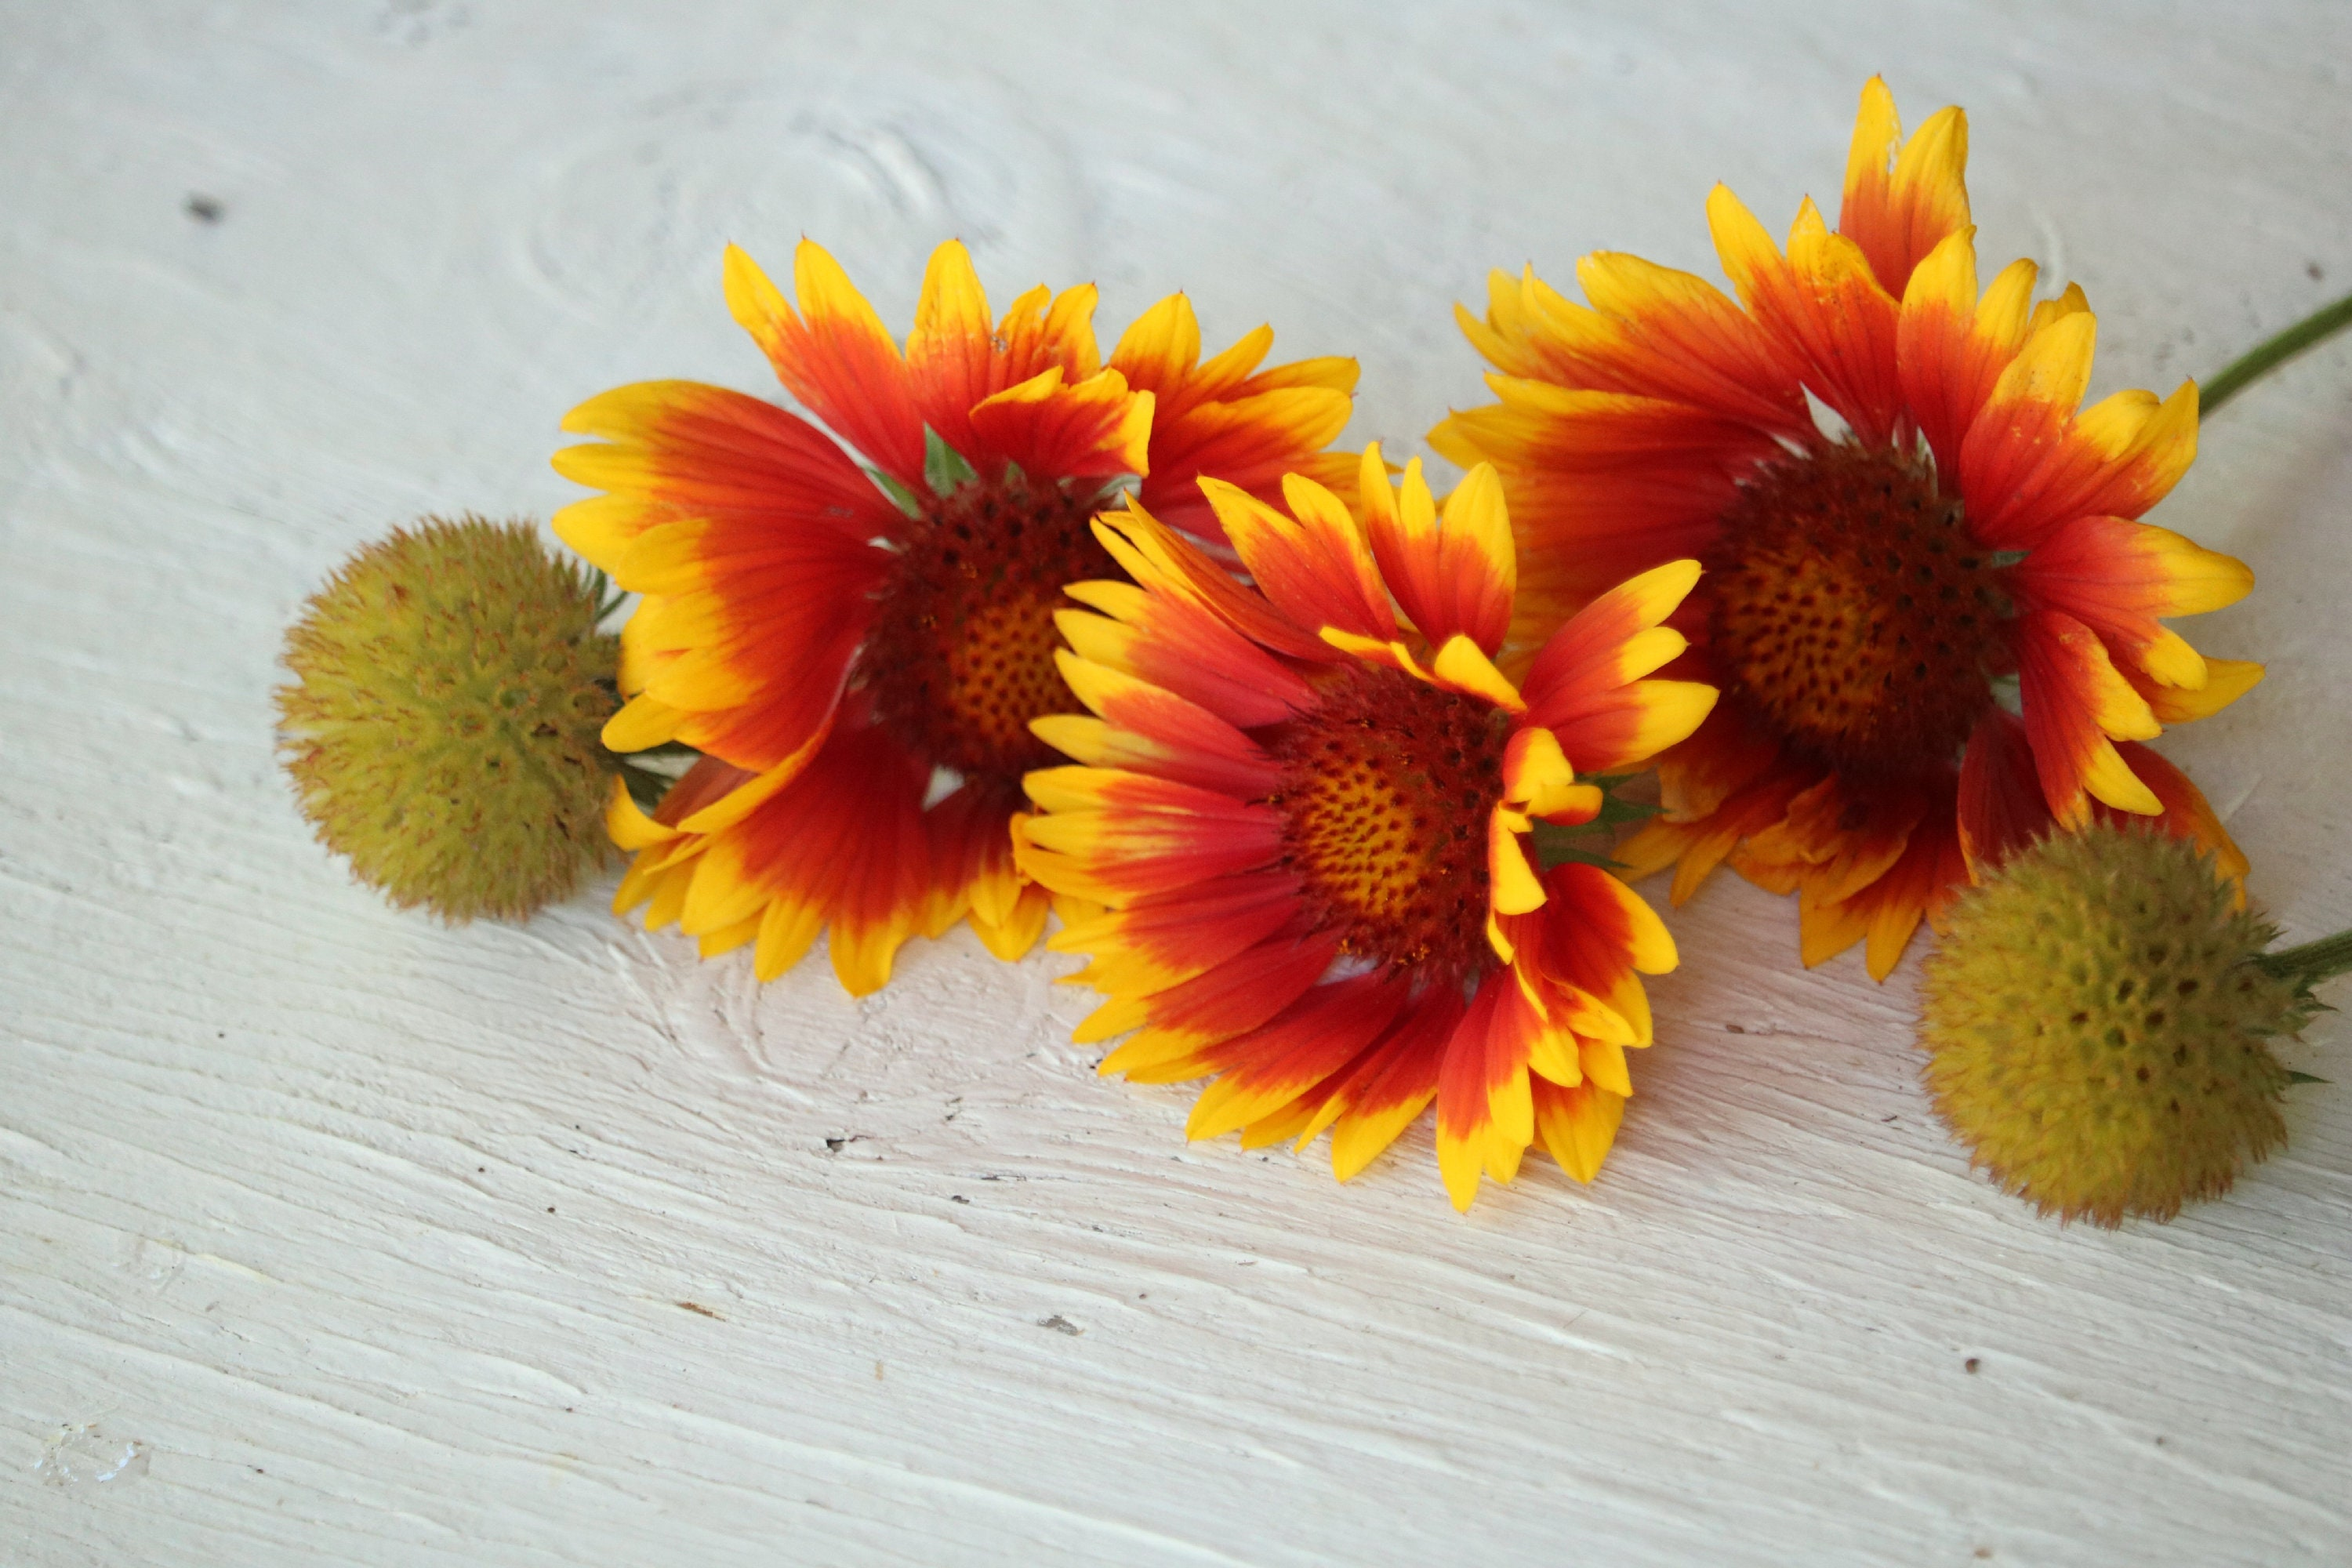 Blanket Flower Seeds Perennial Flower Seeds Gaillardia Etsy